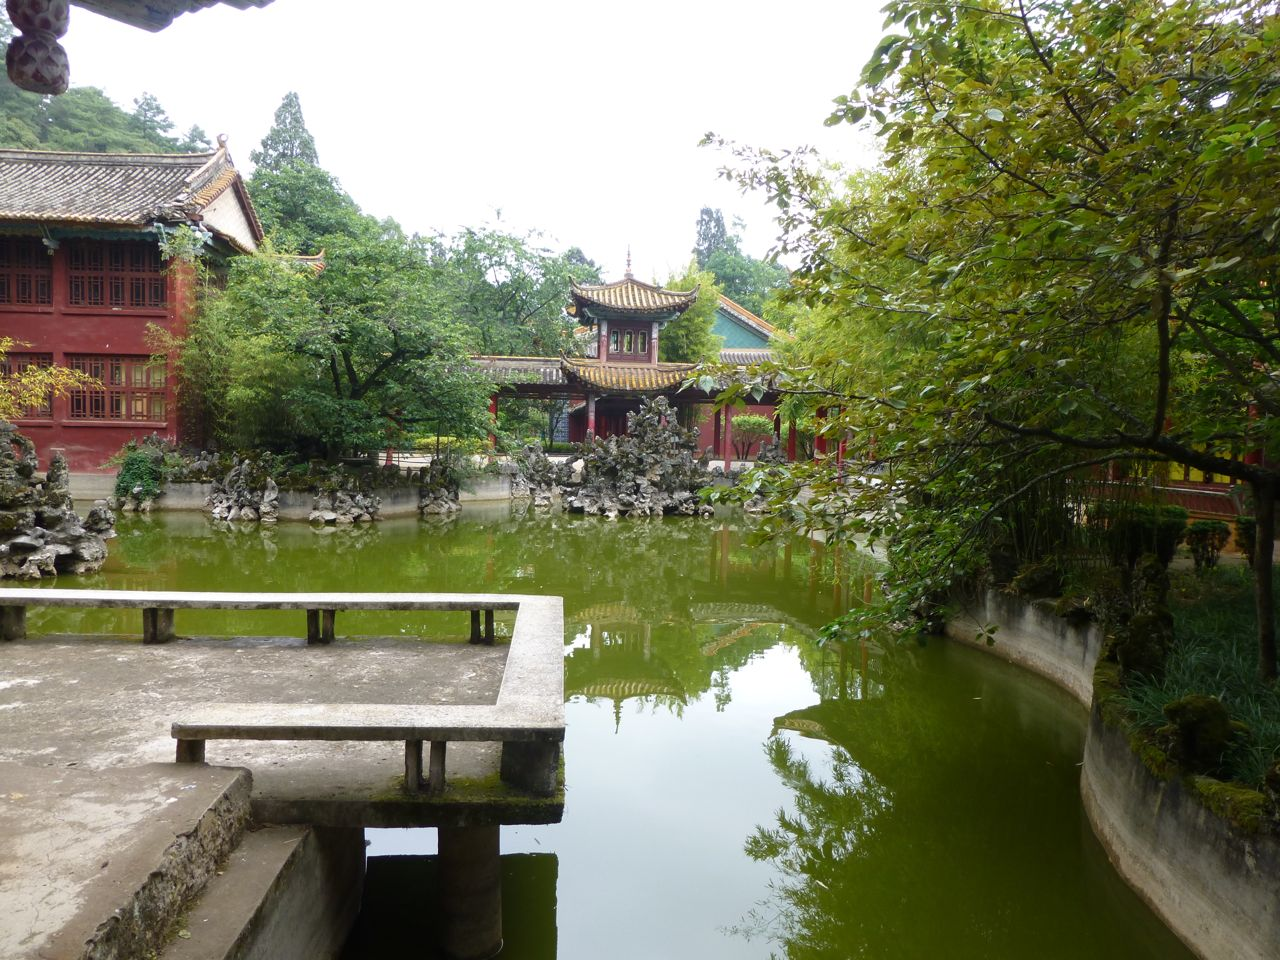 Pond at Taihua temple